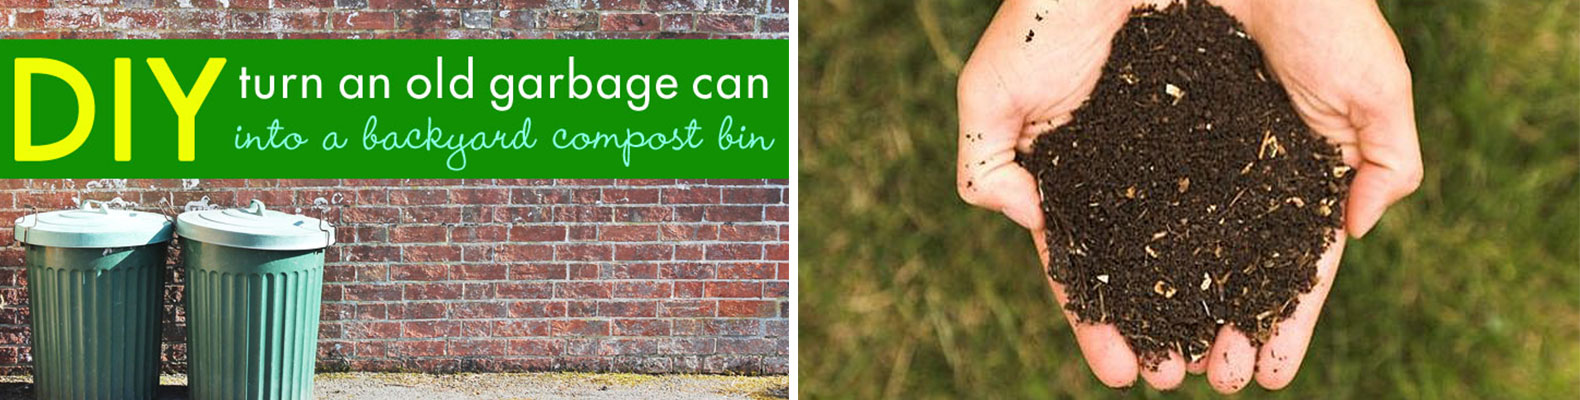 DIY: Backyard composter from a garbage can + what can be tossed into it